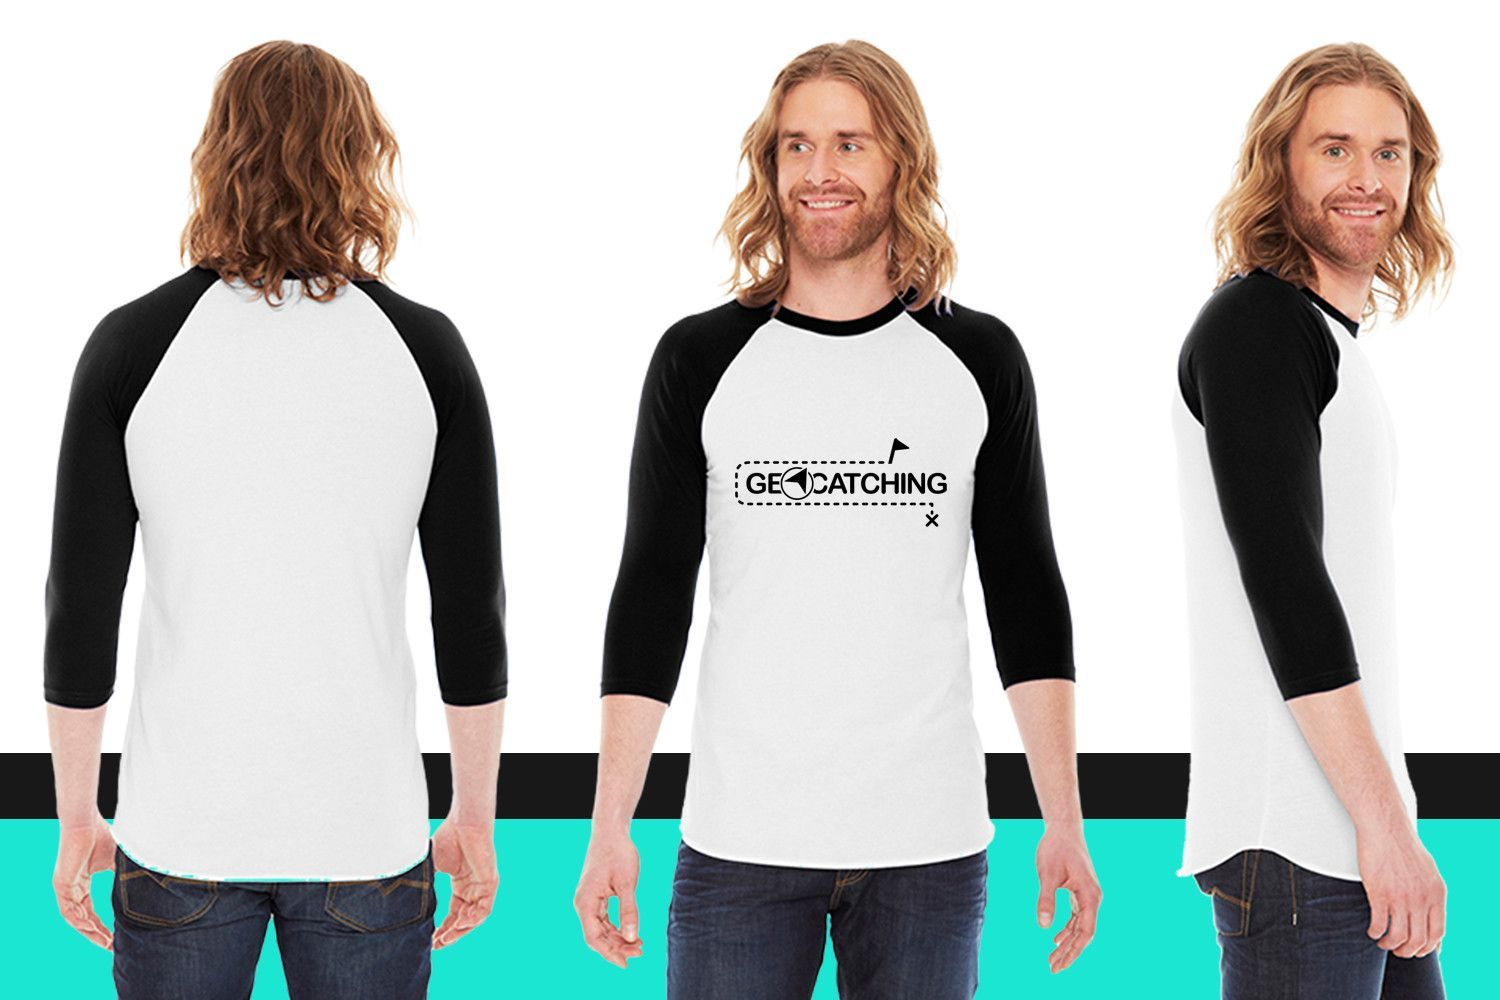 geocatching 1 f1 American Apparel Unisex 3/4 Sleeve T-Shirt